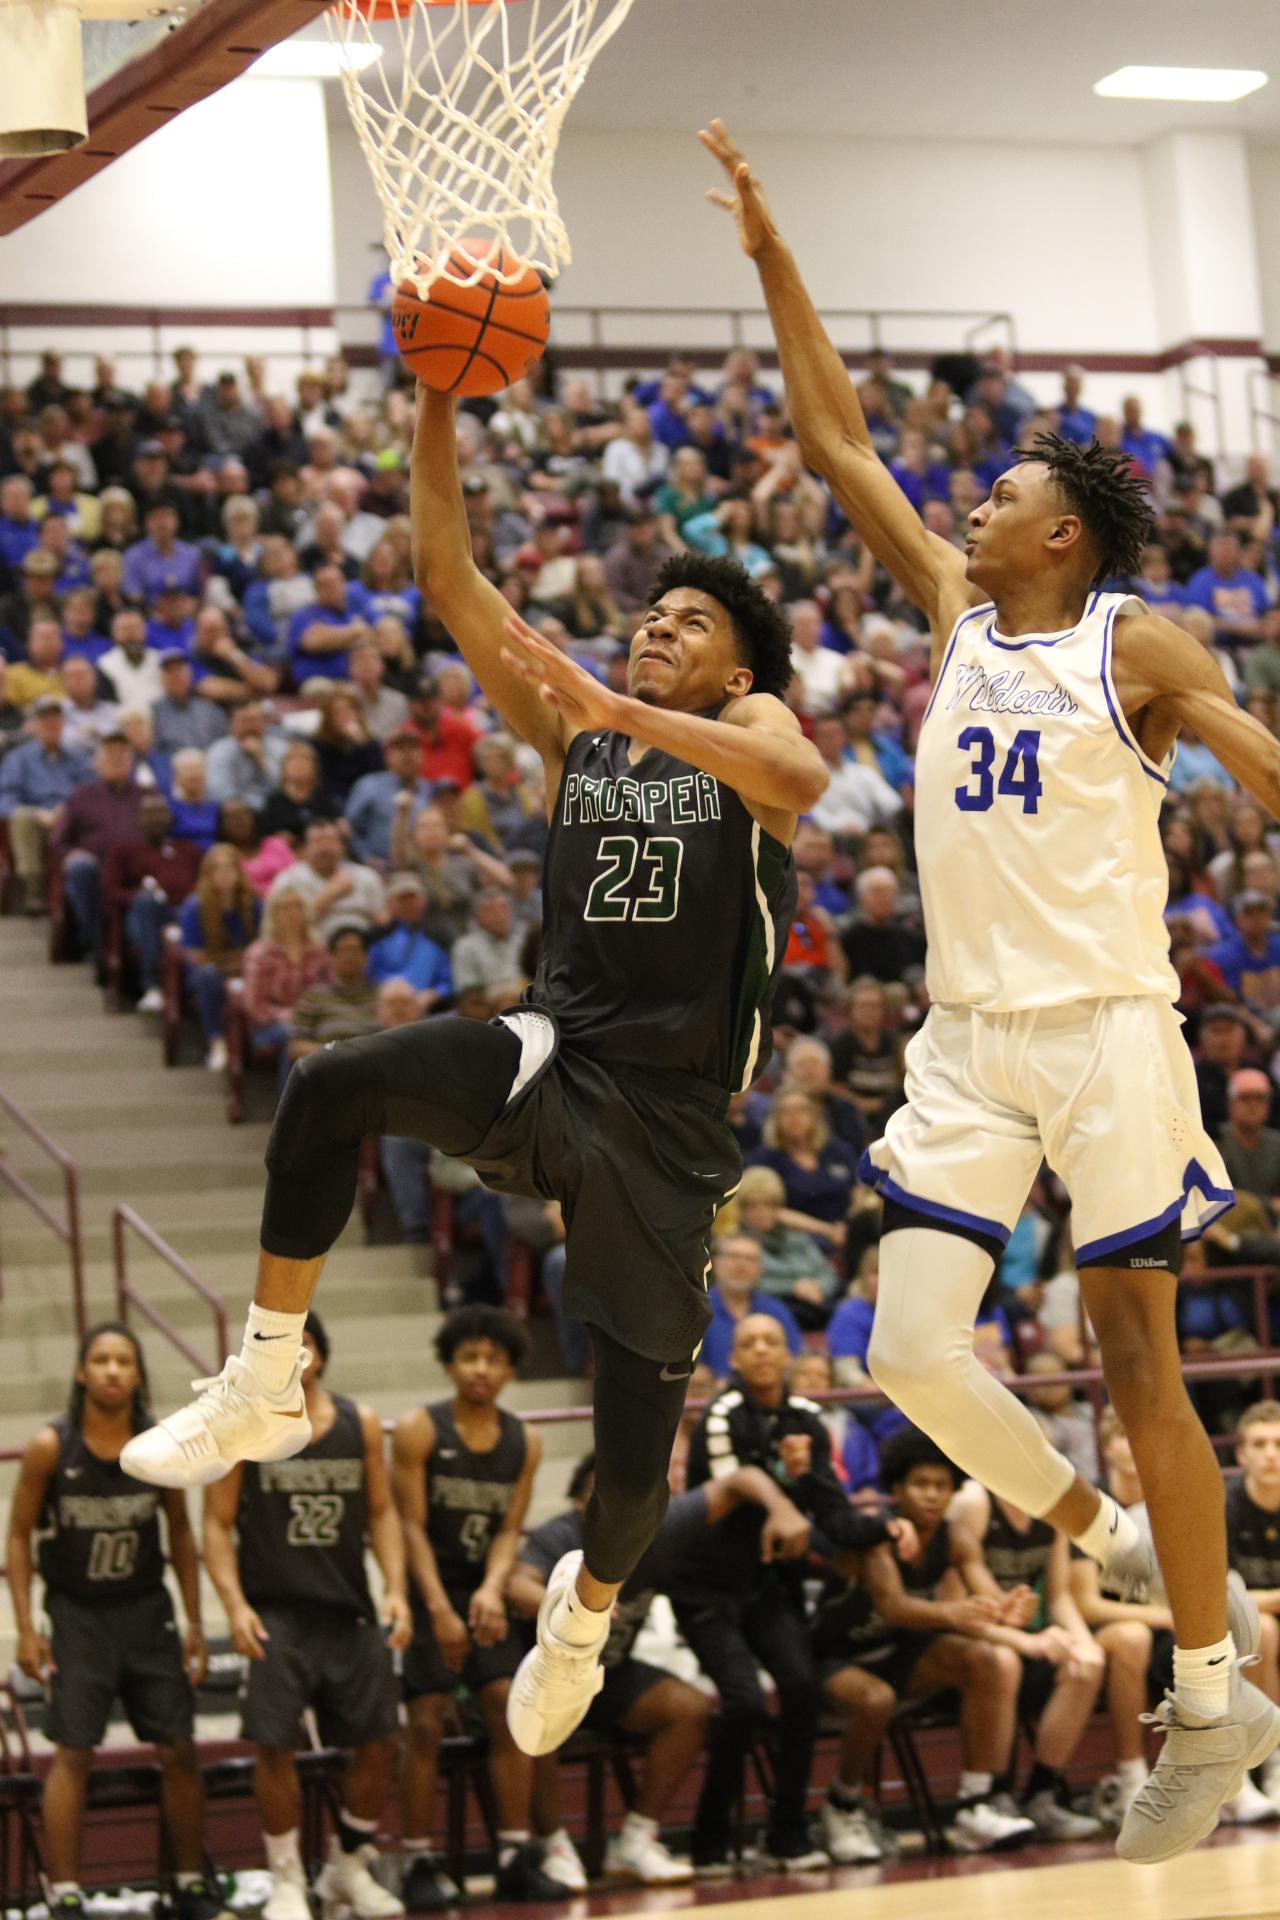 Defend 'til the End – Prosper Basketball Finishes Out Their Season in Fourth Round